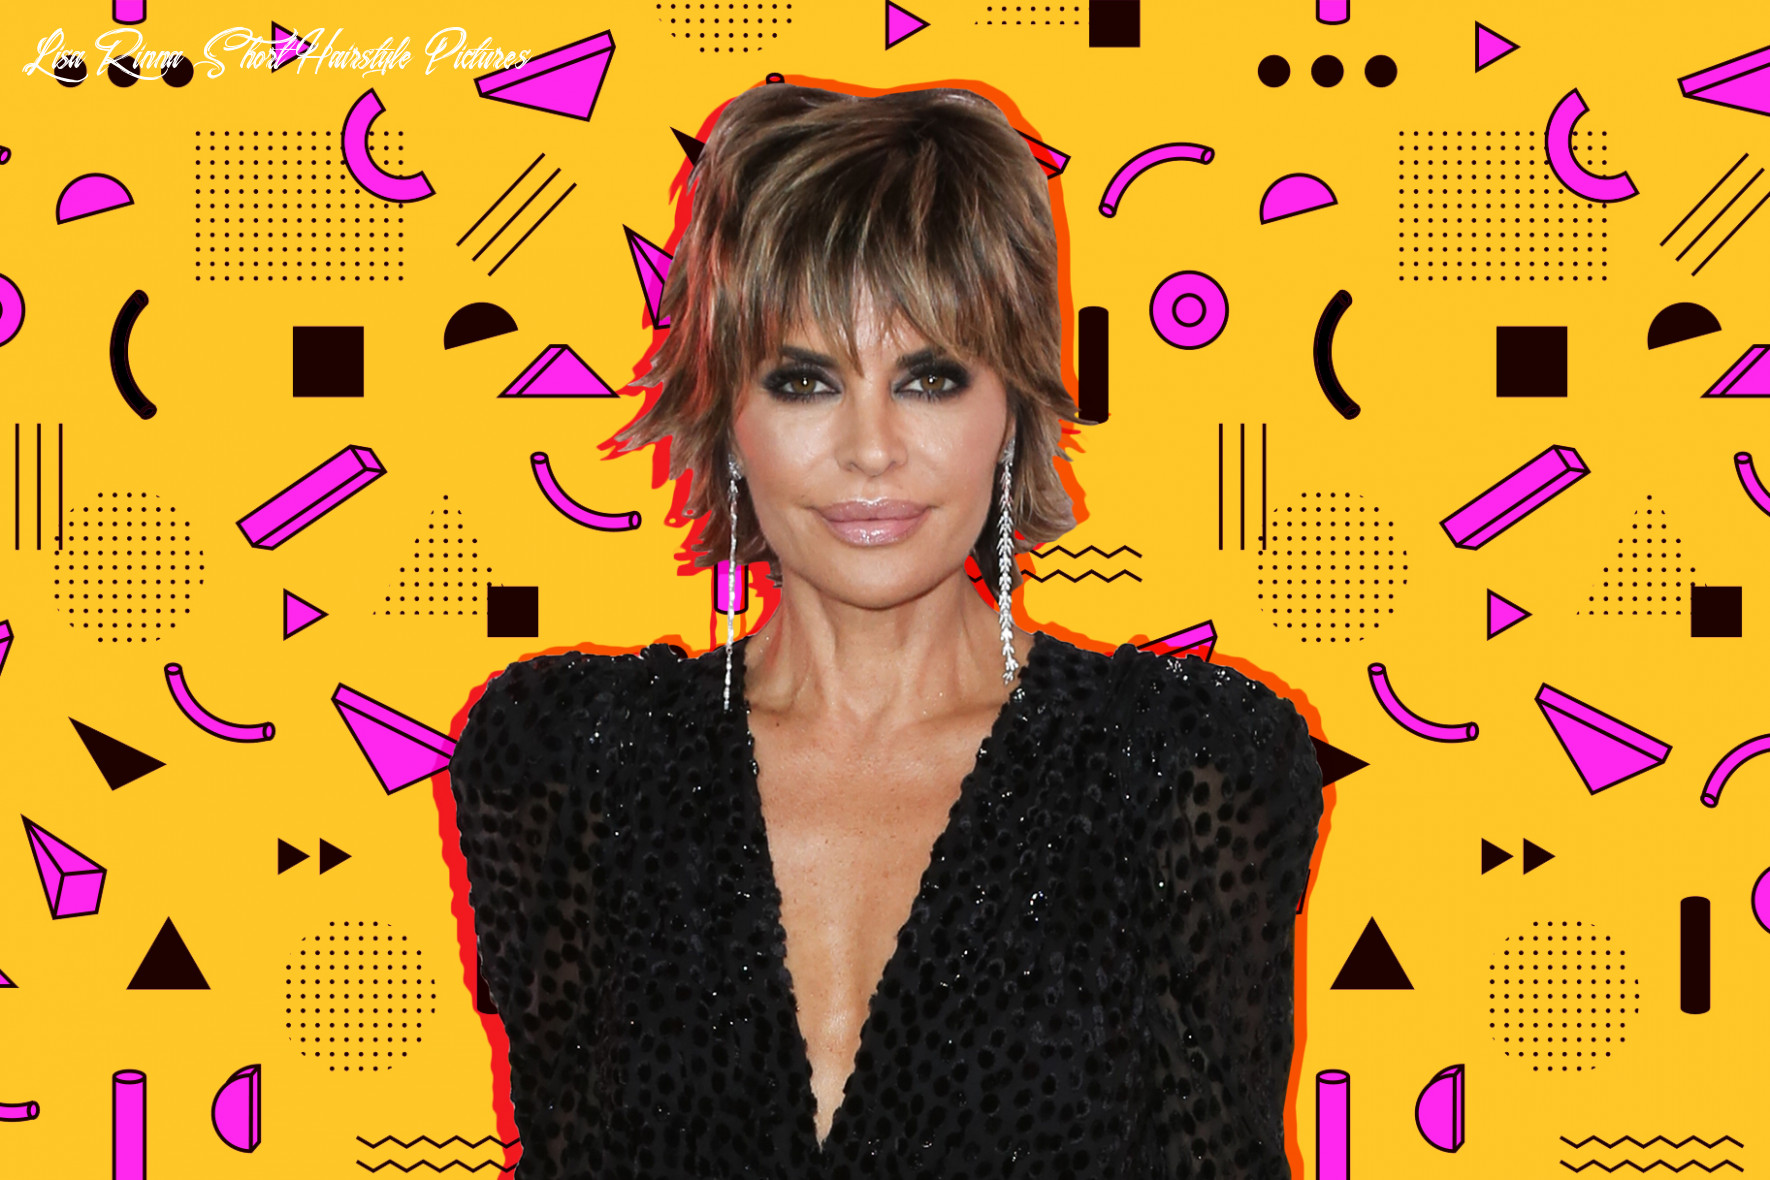 Lisa rinna wears shoulder length lob hairstyle, ditches signature